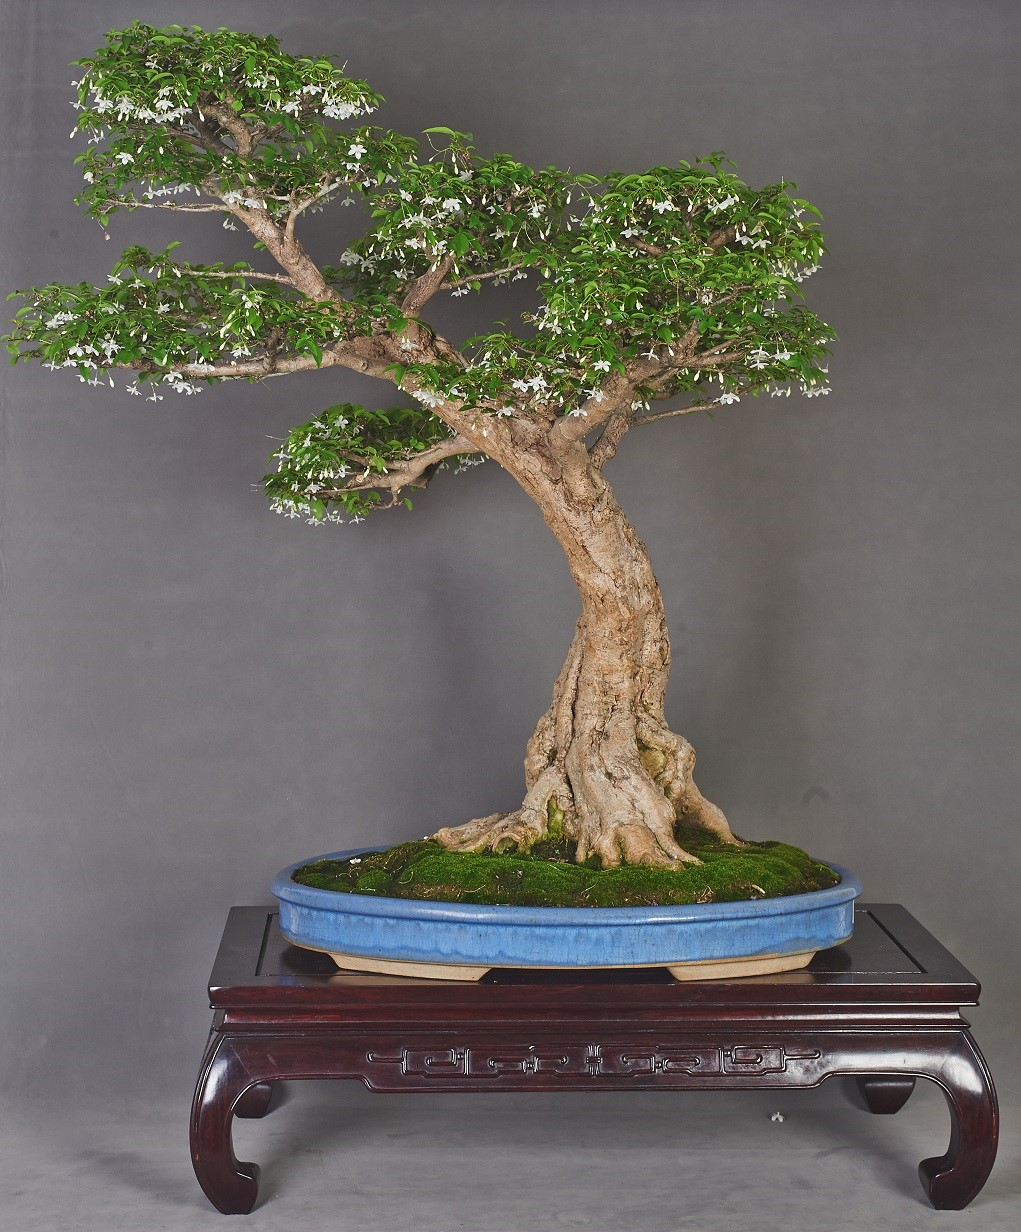 Penjing Singapore And Stone Appreciation Society Bonsai Without Wiring Cultivation Training Of Plants Such As Pruning Fertilising Together With Stringent Care Artistic Skills The Creator Over A Period